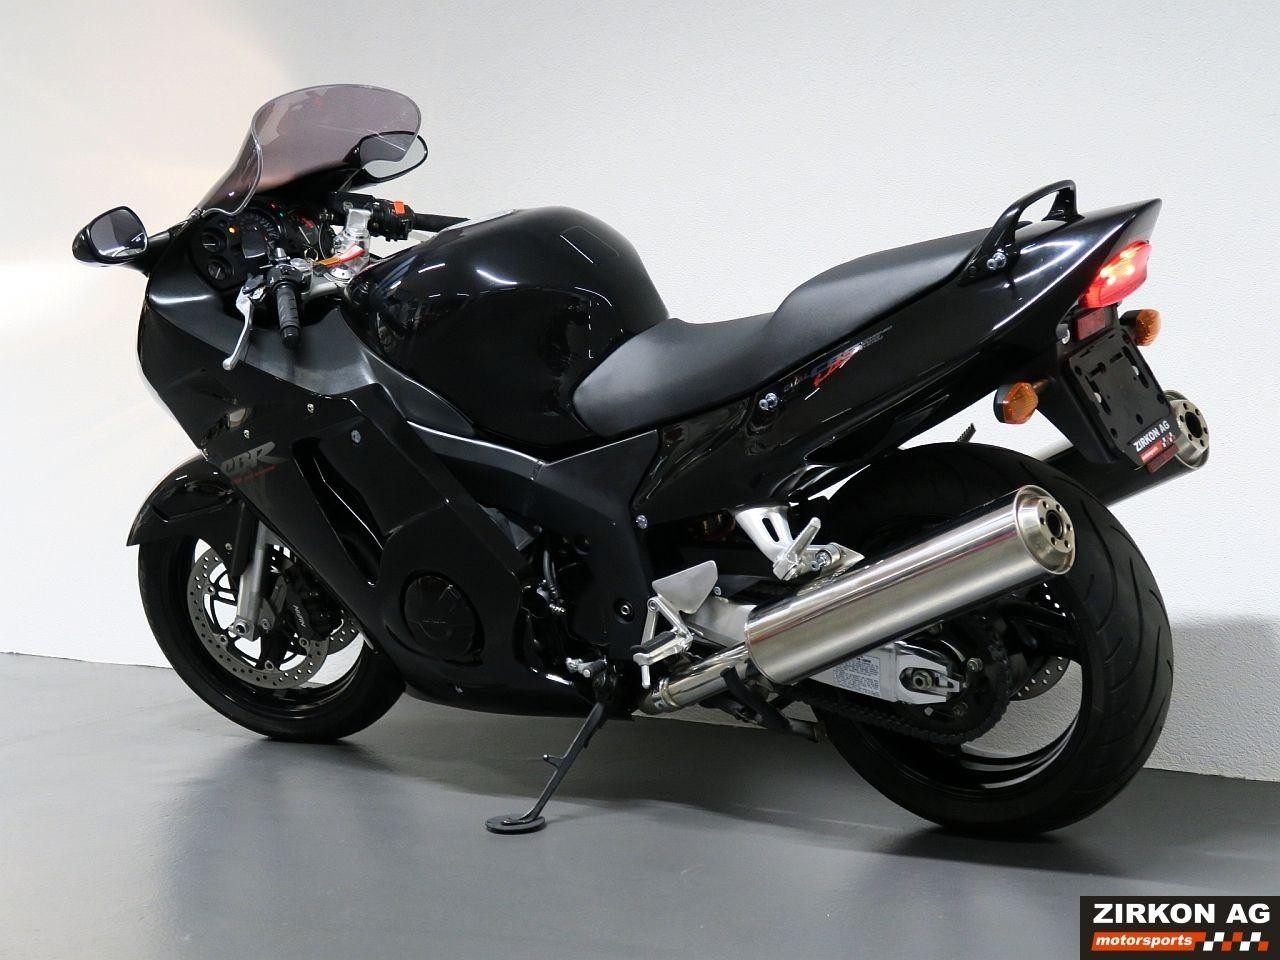 moto occasioni acquistare honda cbr 1100 xx blackbird zirkon ag h nenberg. Black Bedroom Furniture Sets. Home Design Ideas